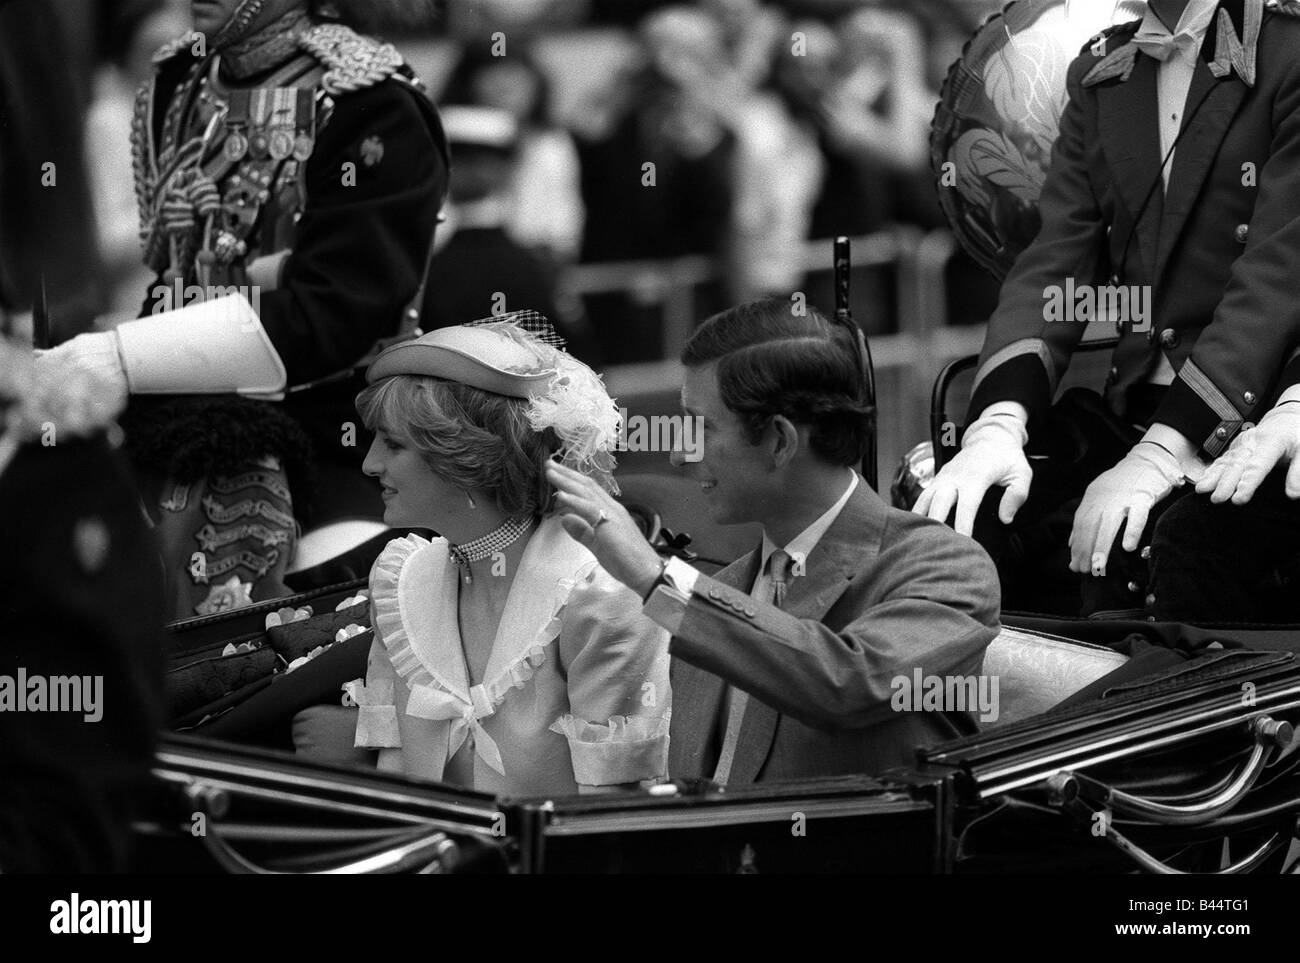 Royal Wedding of Prince Charles and Diana the Royal couple head off for their extended honeymoon in the royal carriage - Stock Image